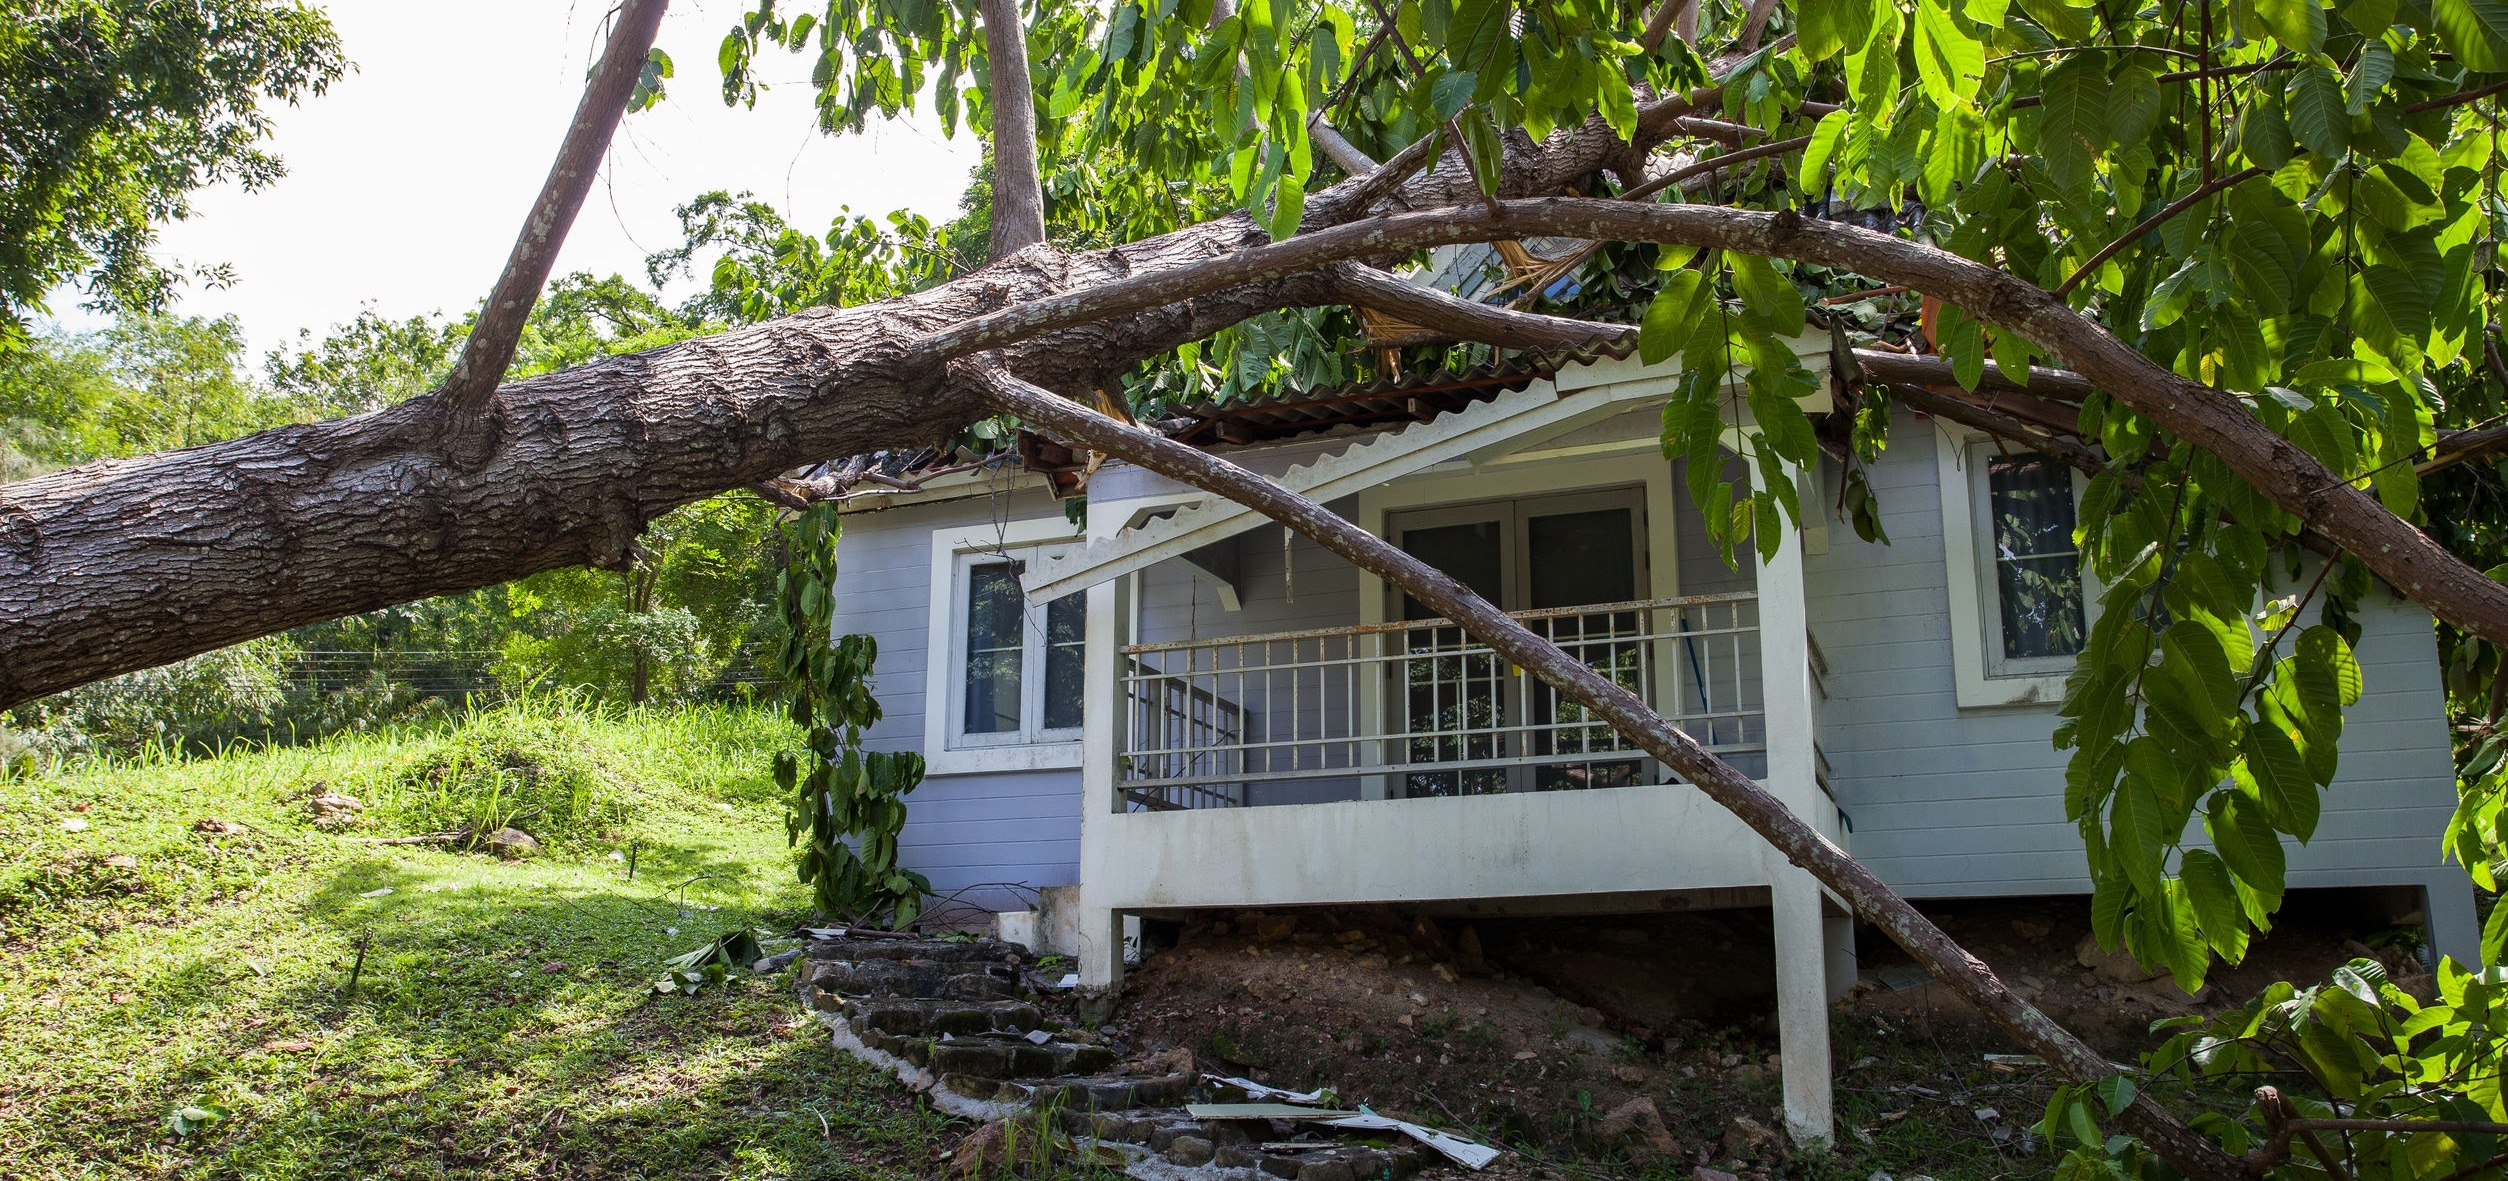 Fallen tree after hard storm on a damaged house